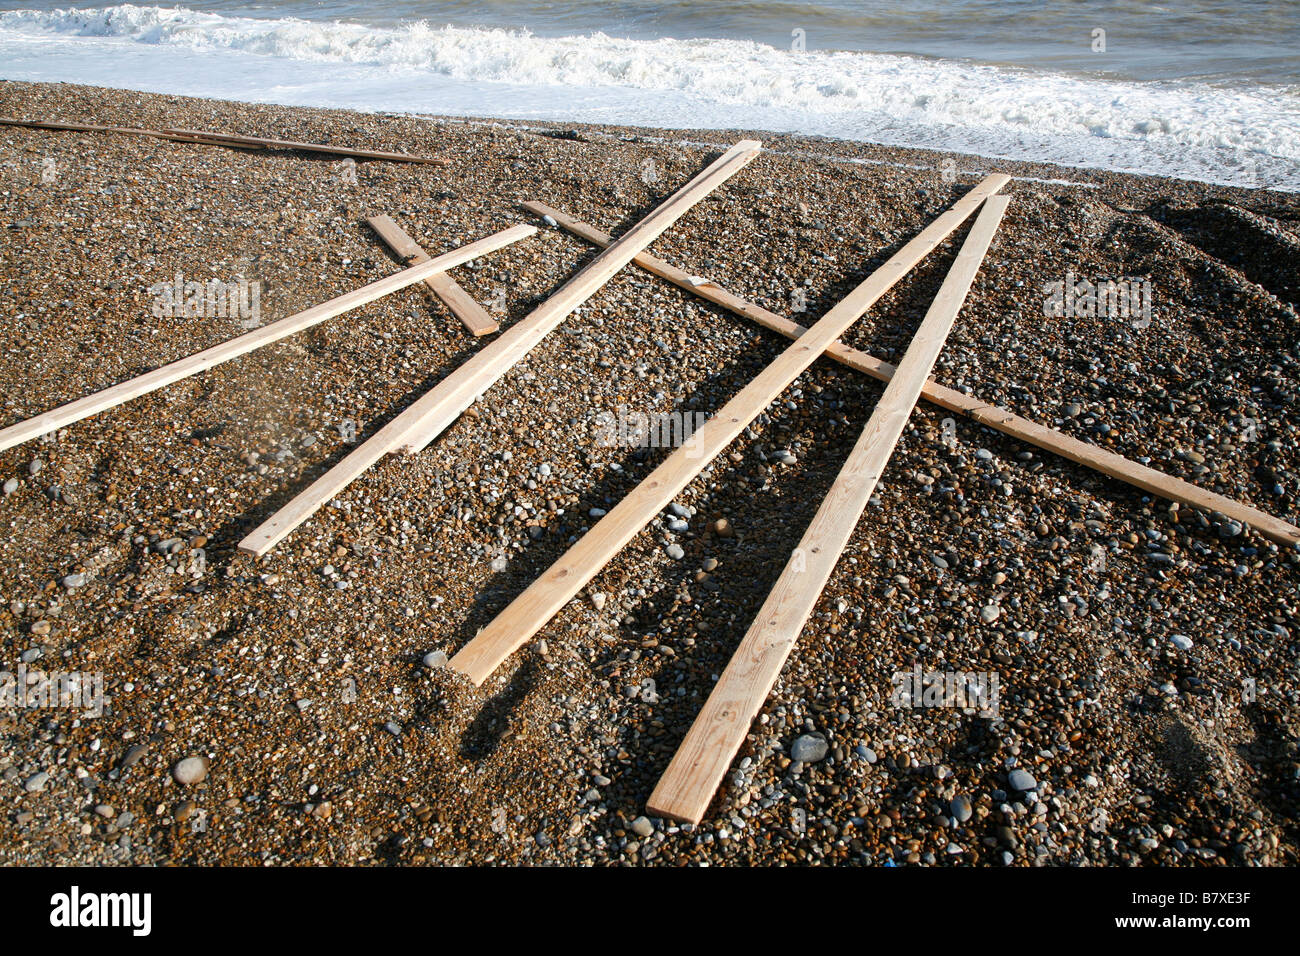 Timber planks washed ashore from stricken cargo ship Suffolk England January 2009 - Stock Image